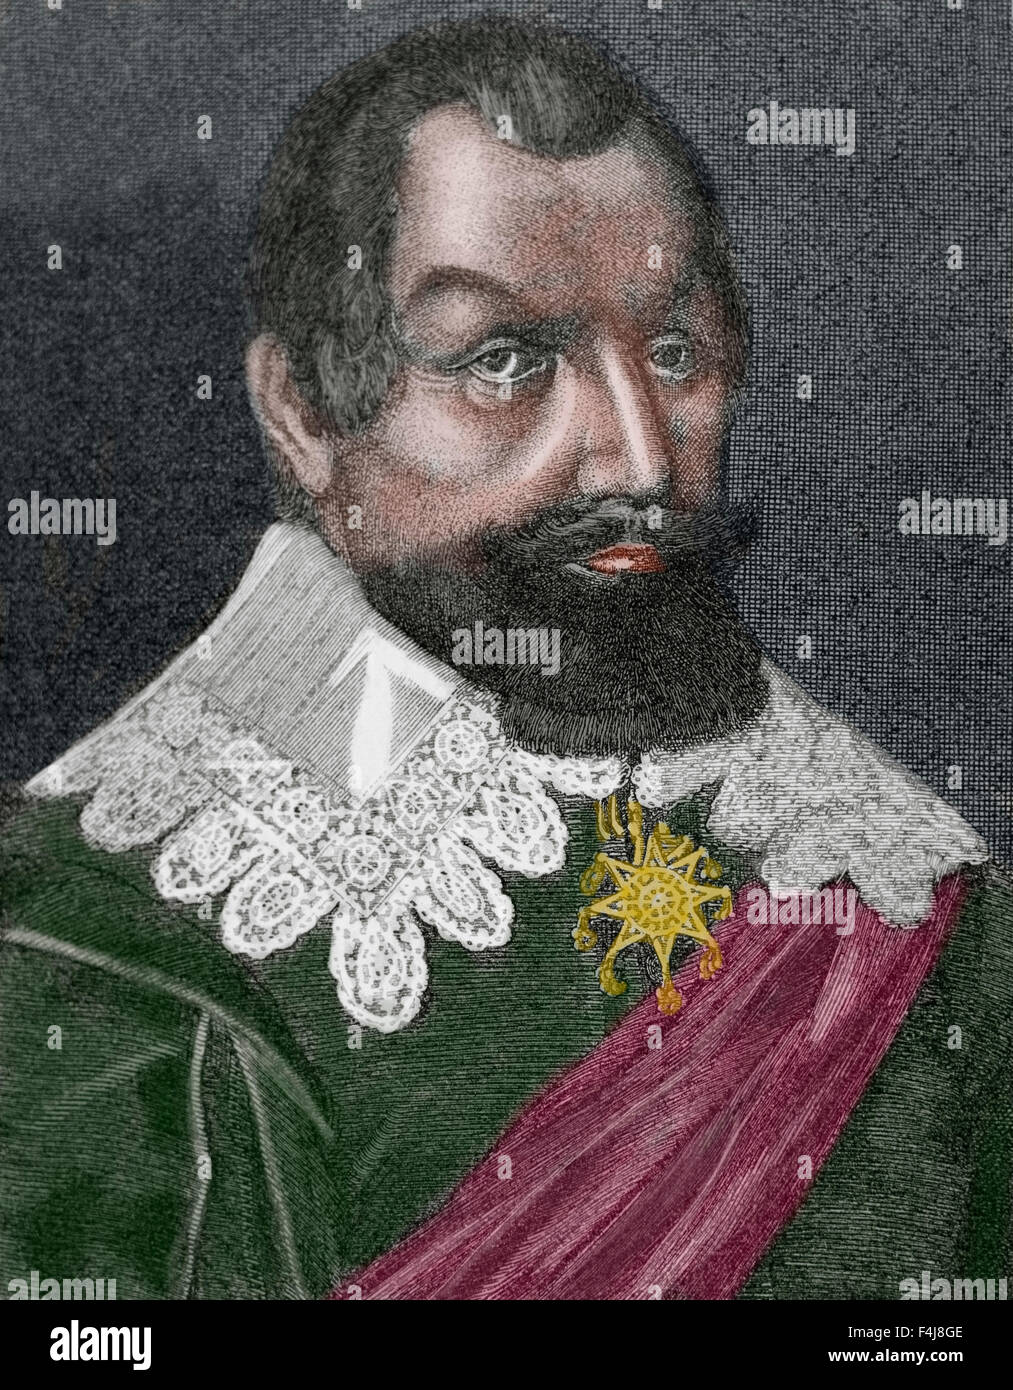 Axel Oxenstierna (1583-1654). Count of Sodermore, was a Swedish statesman. Engraving by E. Hondius. Colored. - Stock Image